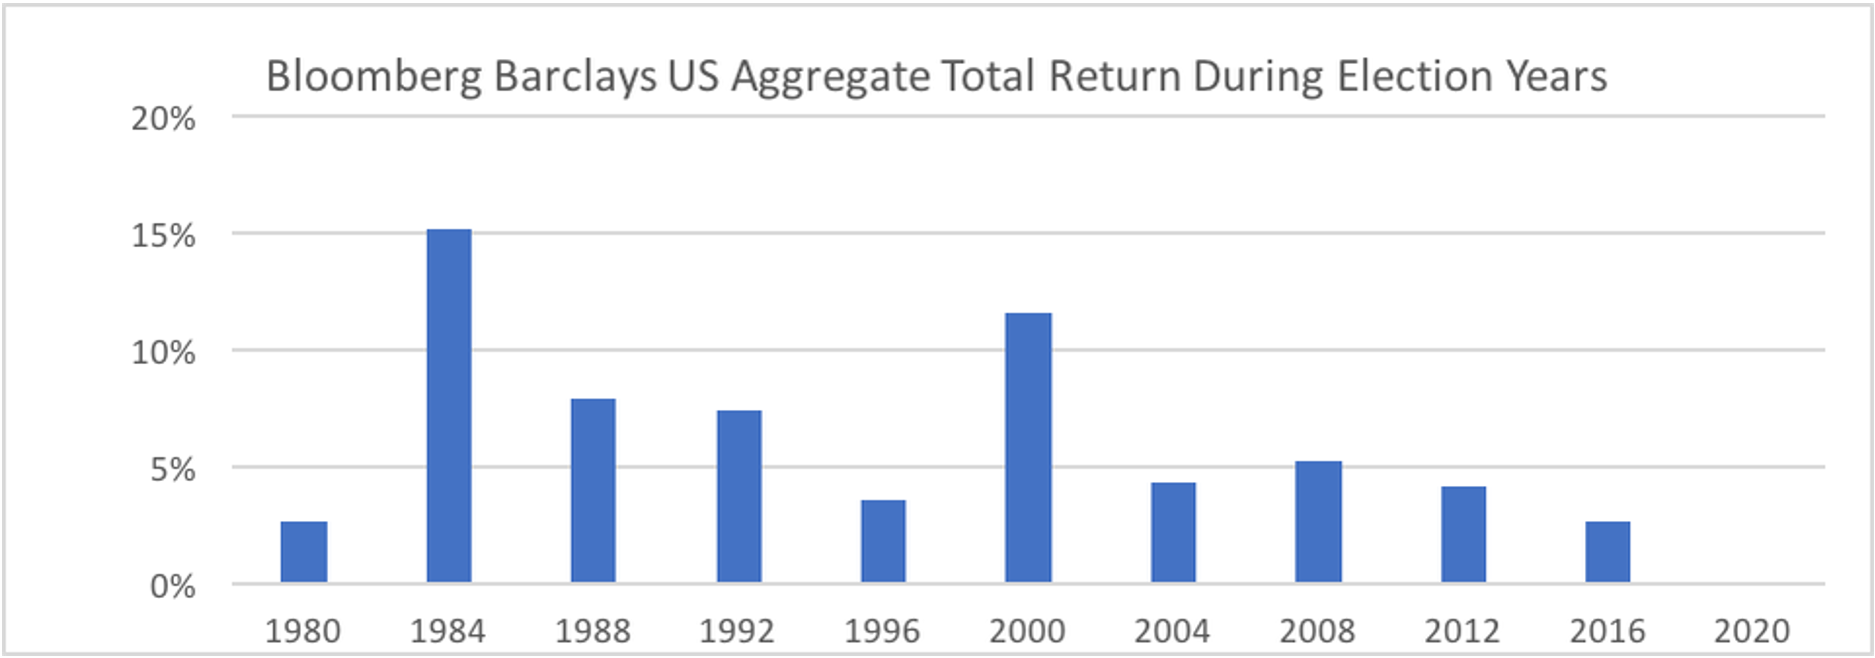 07.15.2020 - Bloomberg Barclays US Aggregate Total Return During Election Years from 1980 to 2020